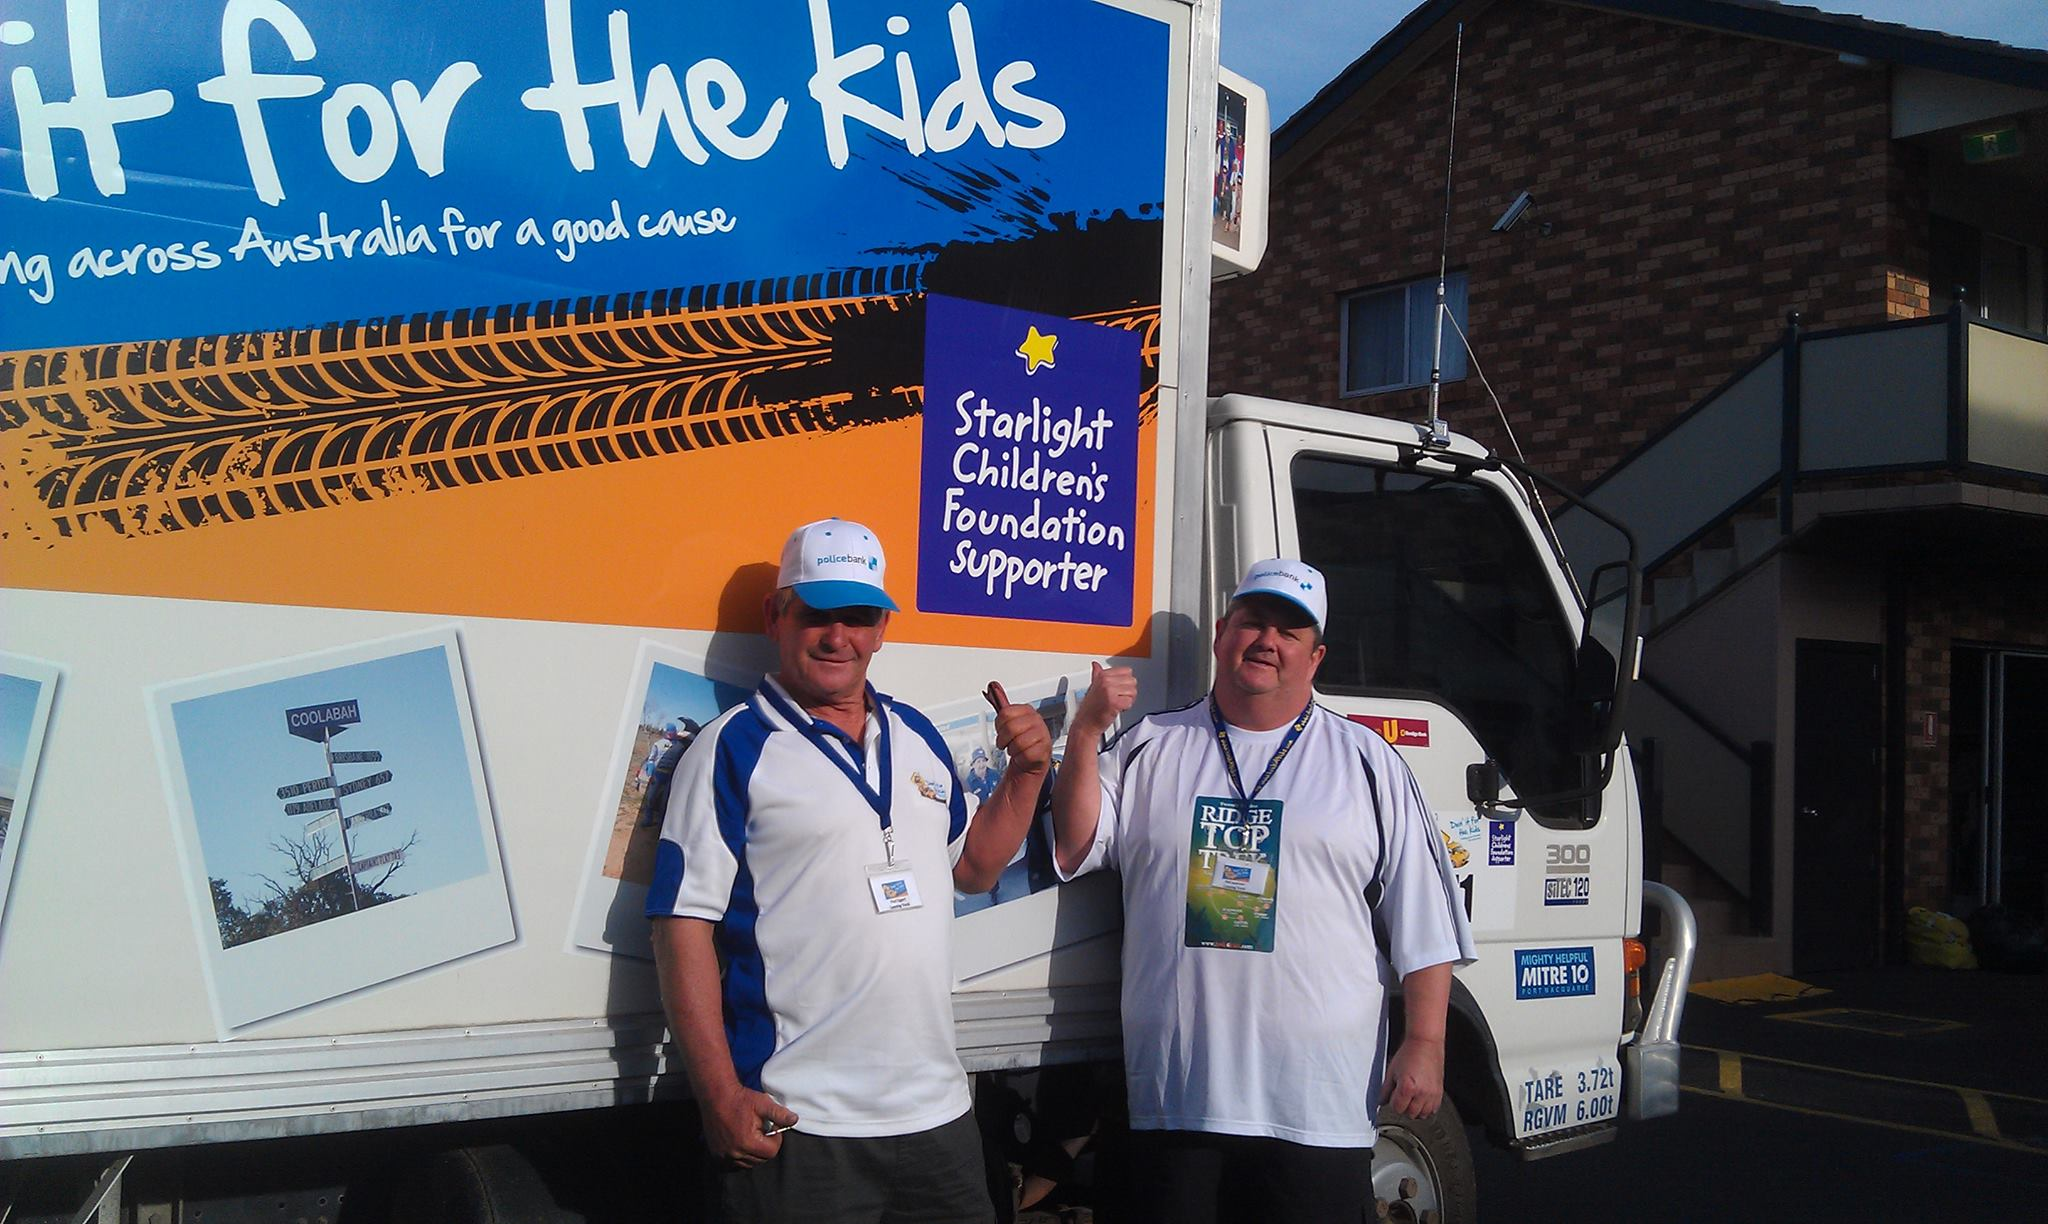 Phillip LEVERTON, on the right, with the Starlight Children's Foundation van.